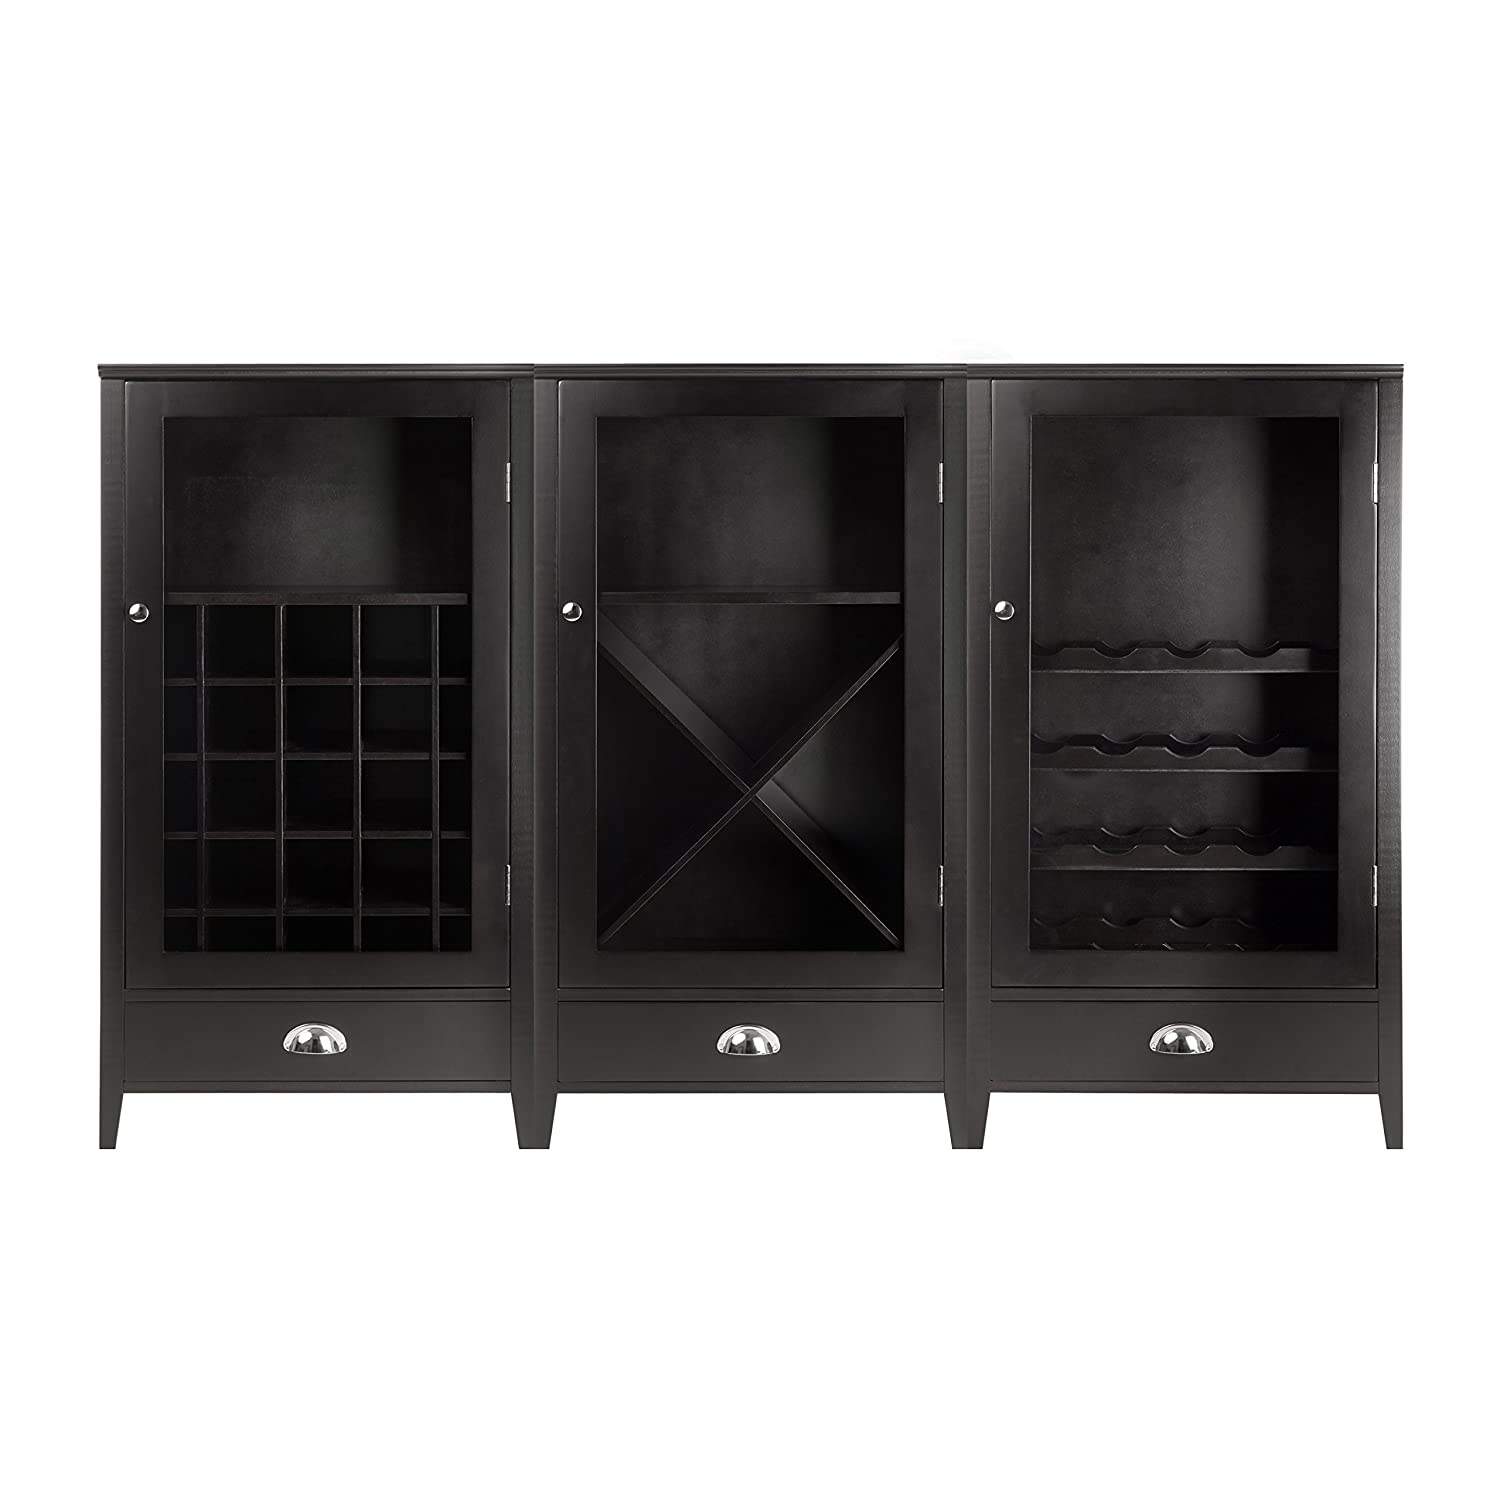 Amazon.com Winsome Wood 3-Piece Wine Cabinet Modular Set Kitchen u0026 Dining  sc 1 st  Amazon.com & Amazon.com: Winsome Wood 3-Piece Wine Cabinet Modular Set: Kitchen ...